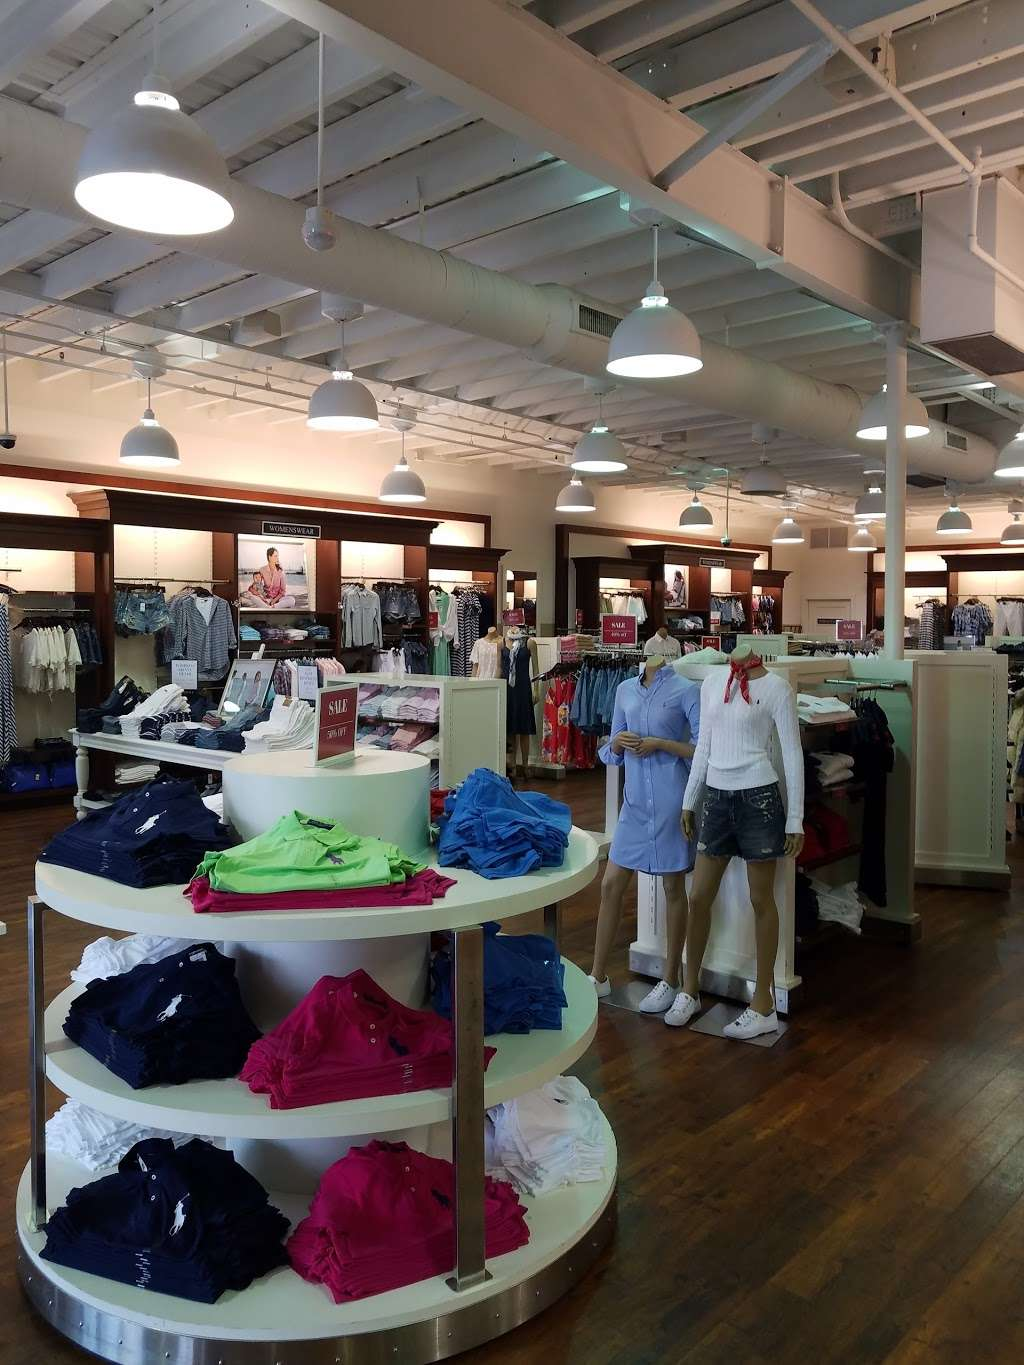 Polo Ralph Lauren Factory Store - clothing store    Photo 9 of 10   Address: 203 Outlet Center Dr, Queenstown, MD 21658, USA   Phone: (410) 827-5039